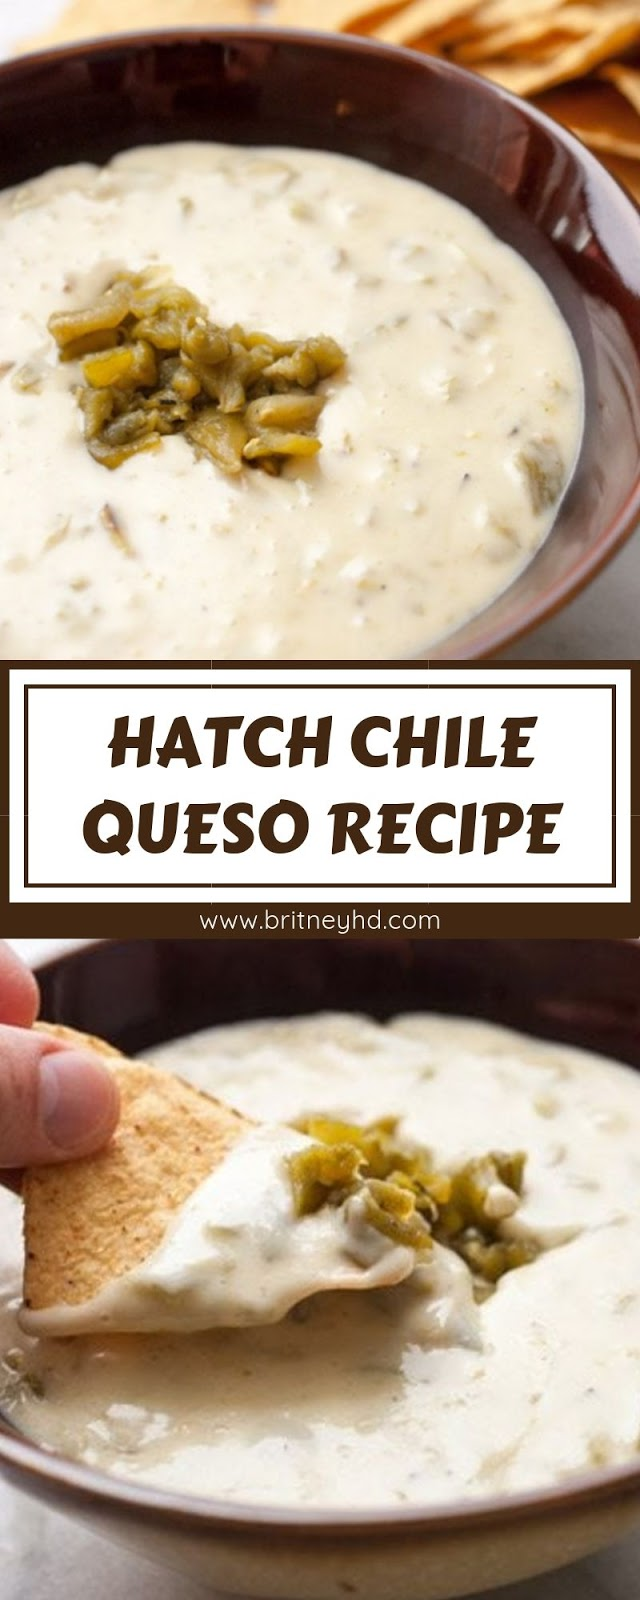 HATCH CHILE QUESO RECIPE